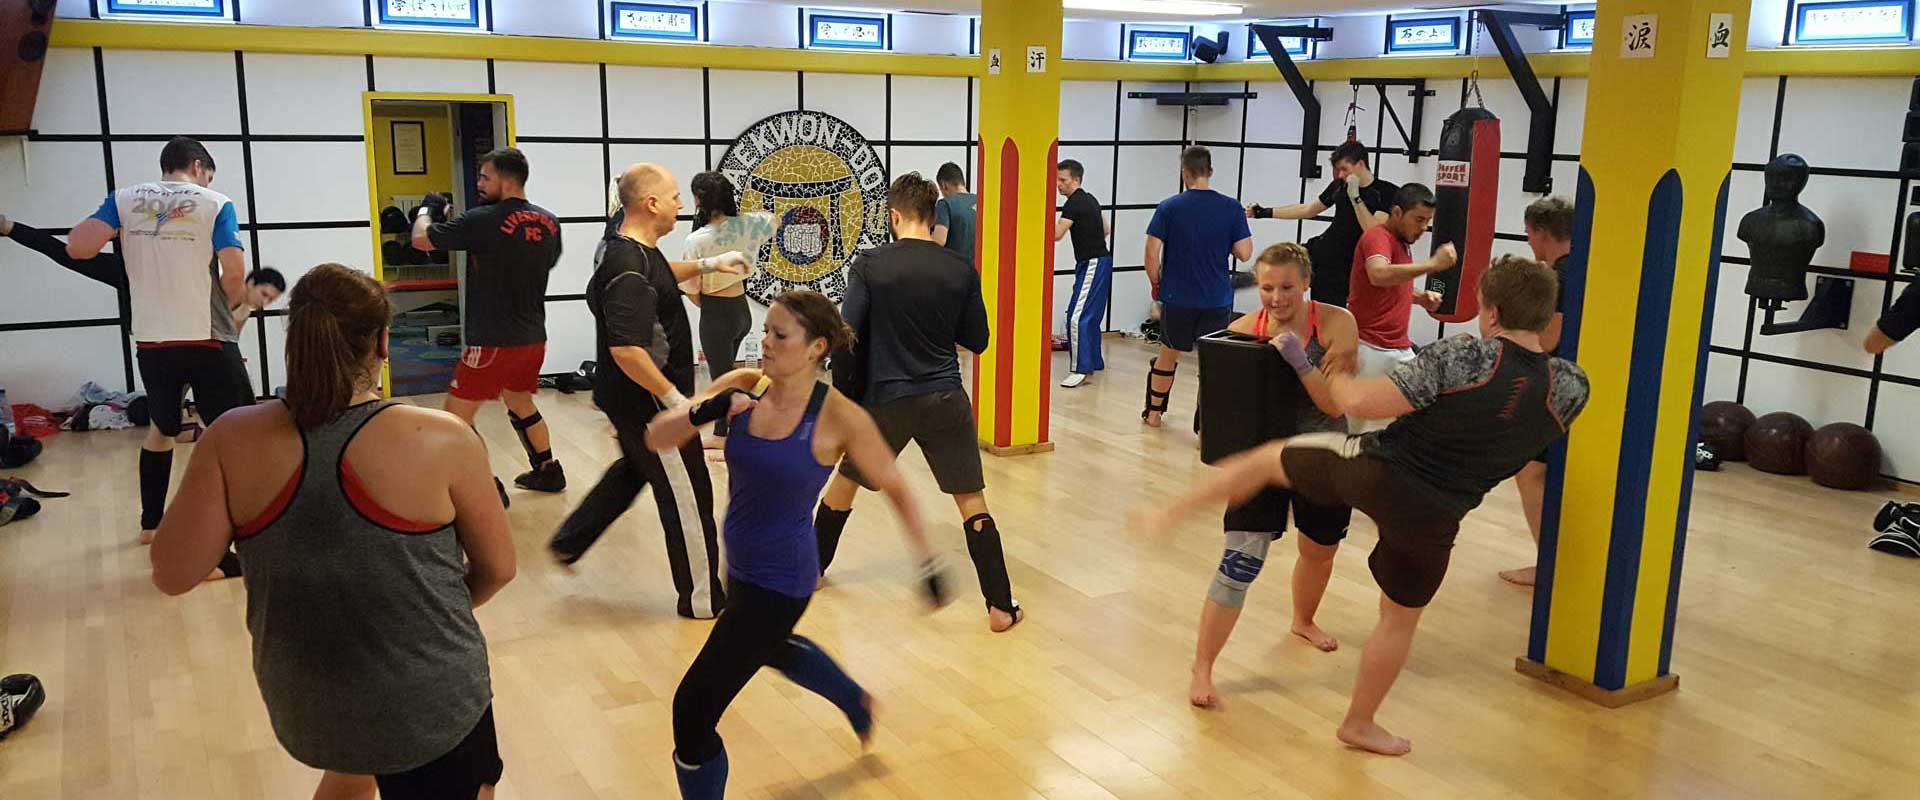 Kickboxen in der Taekwon-Do Academy